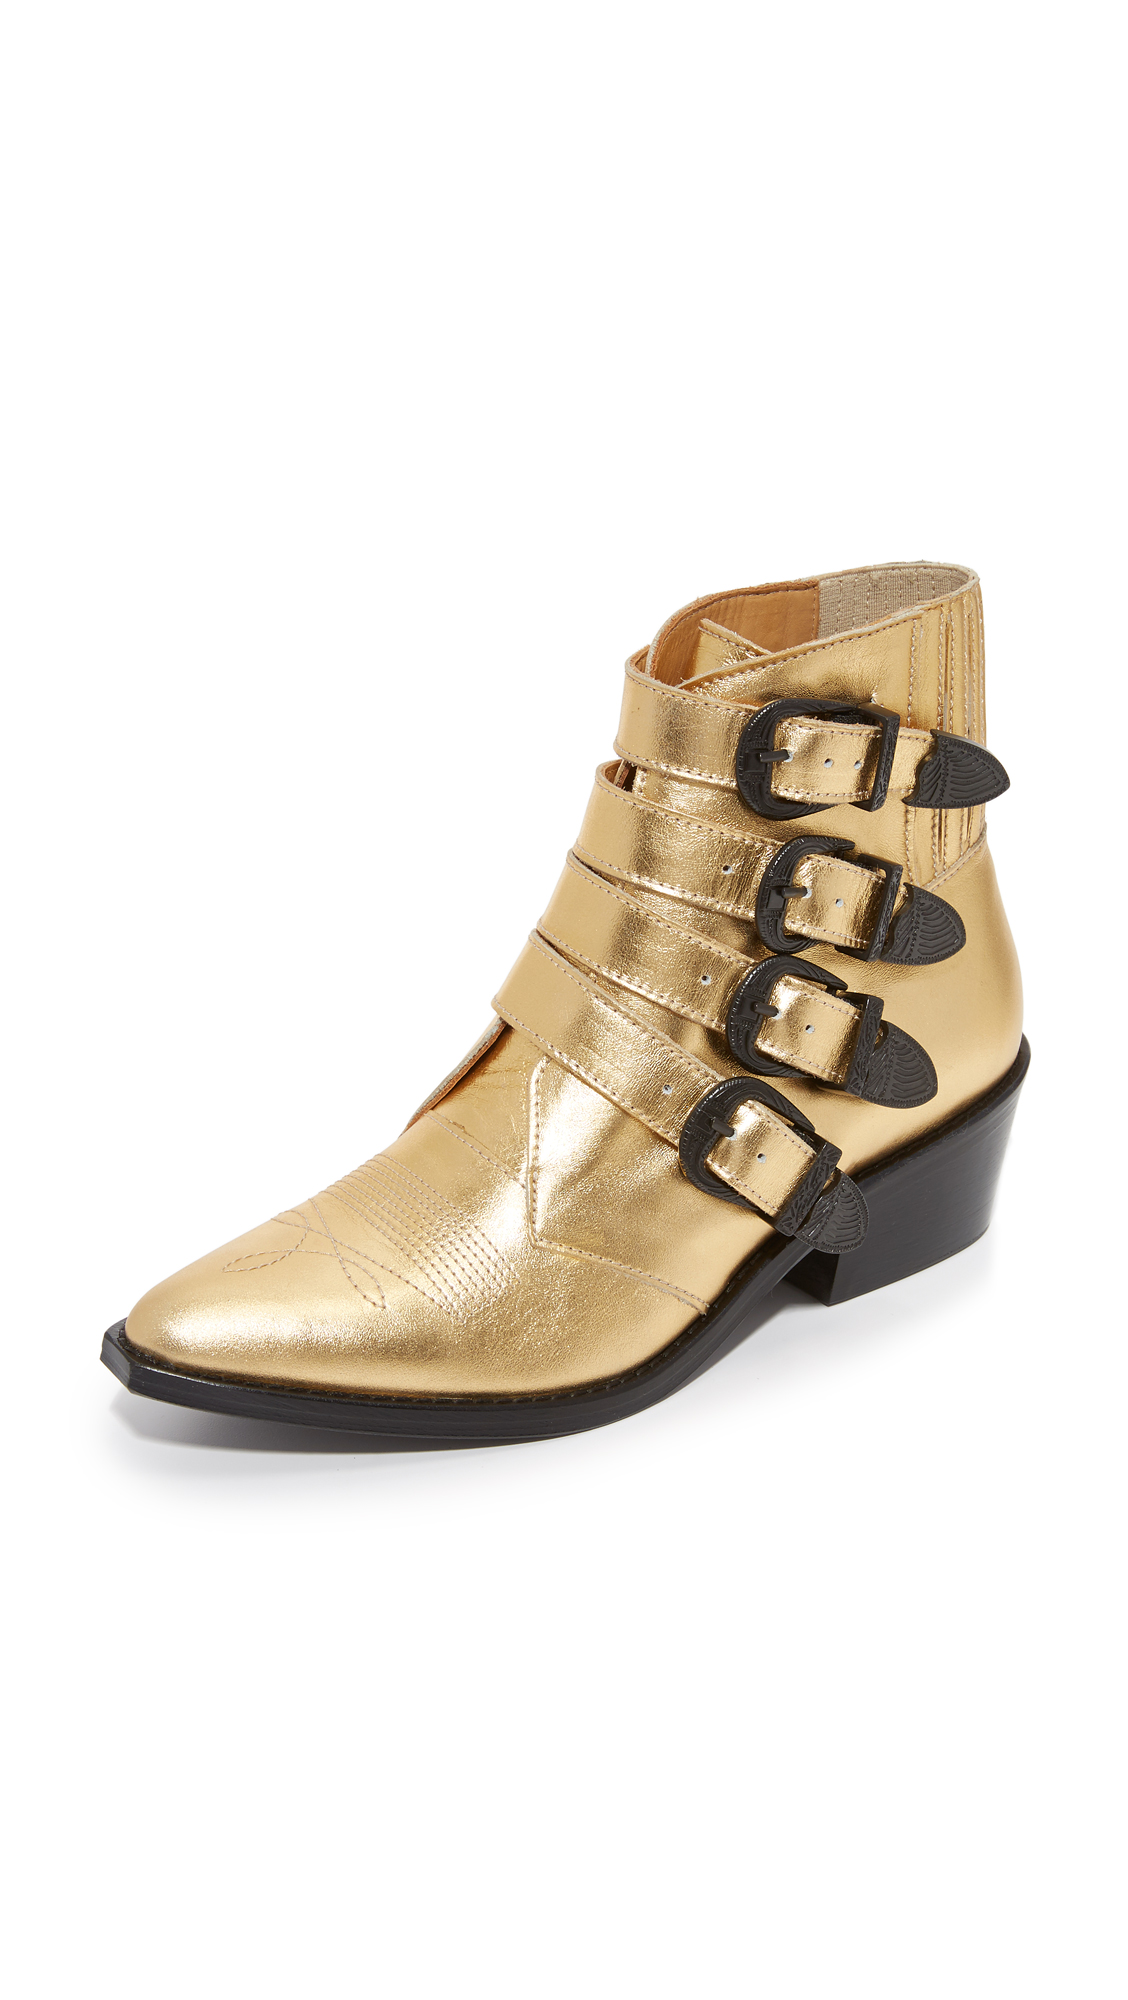 Toga Pulla Metallic Buckled Booties - Metallic Gold